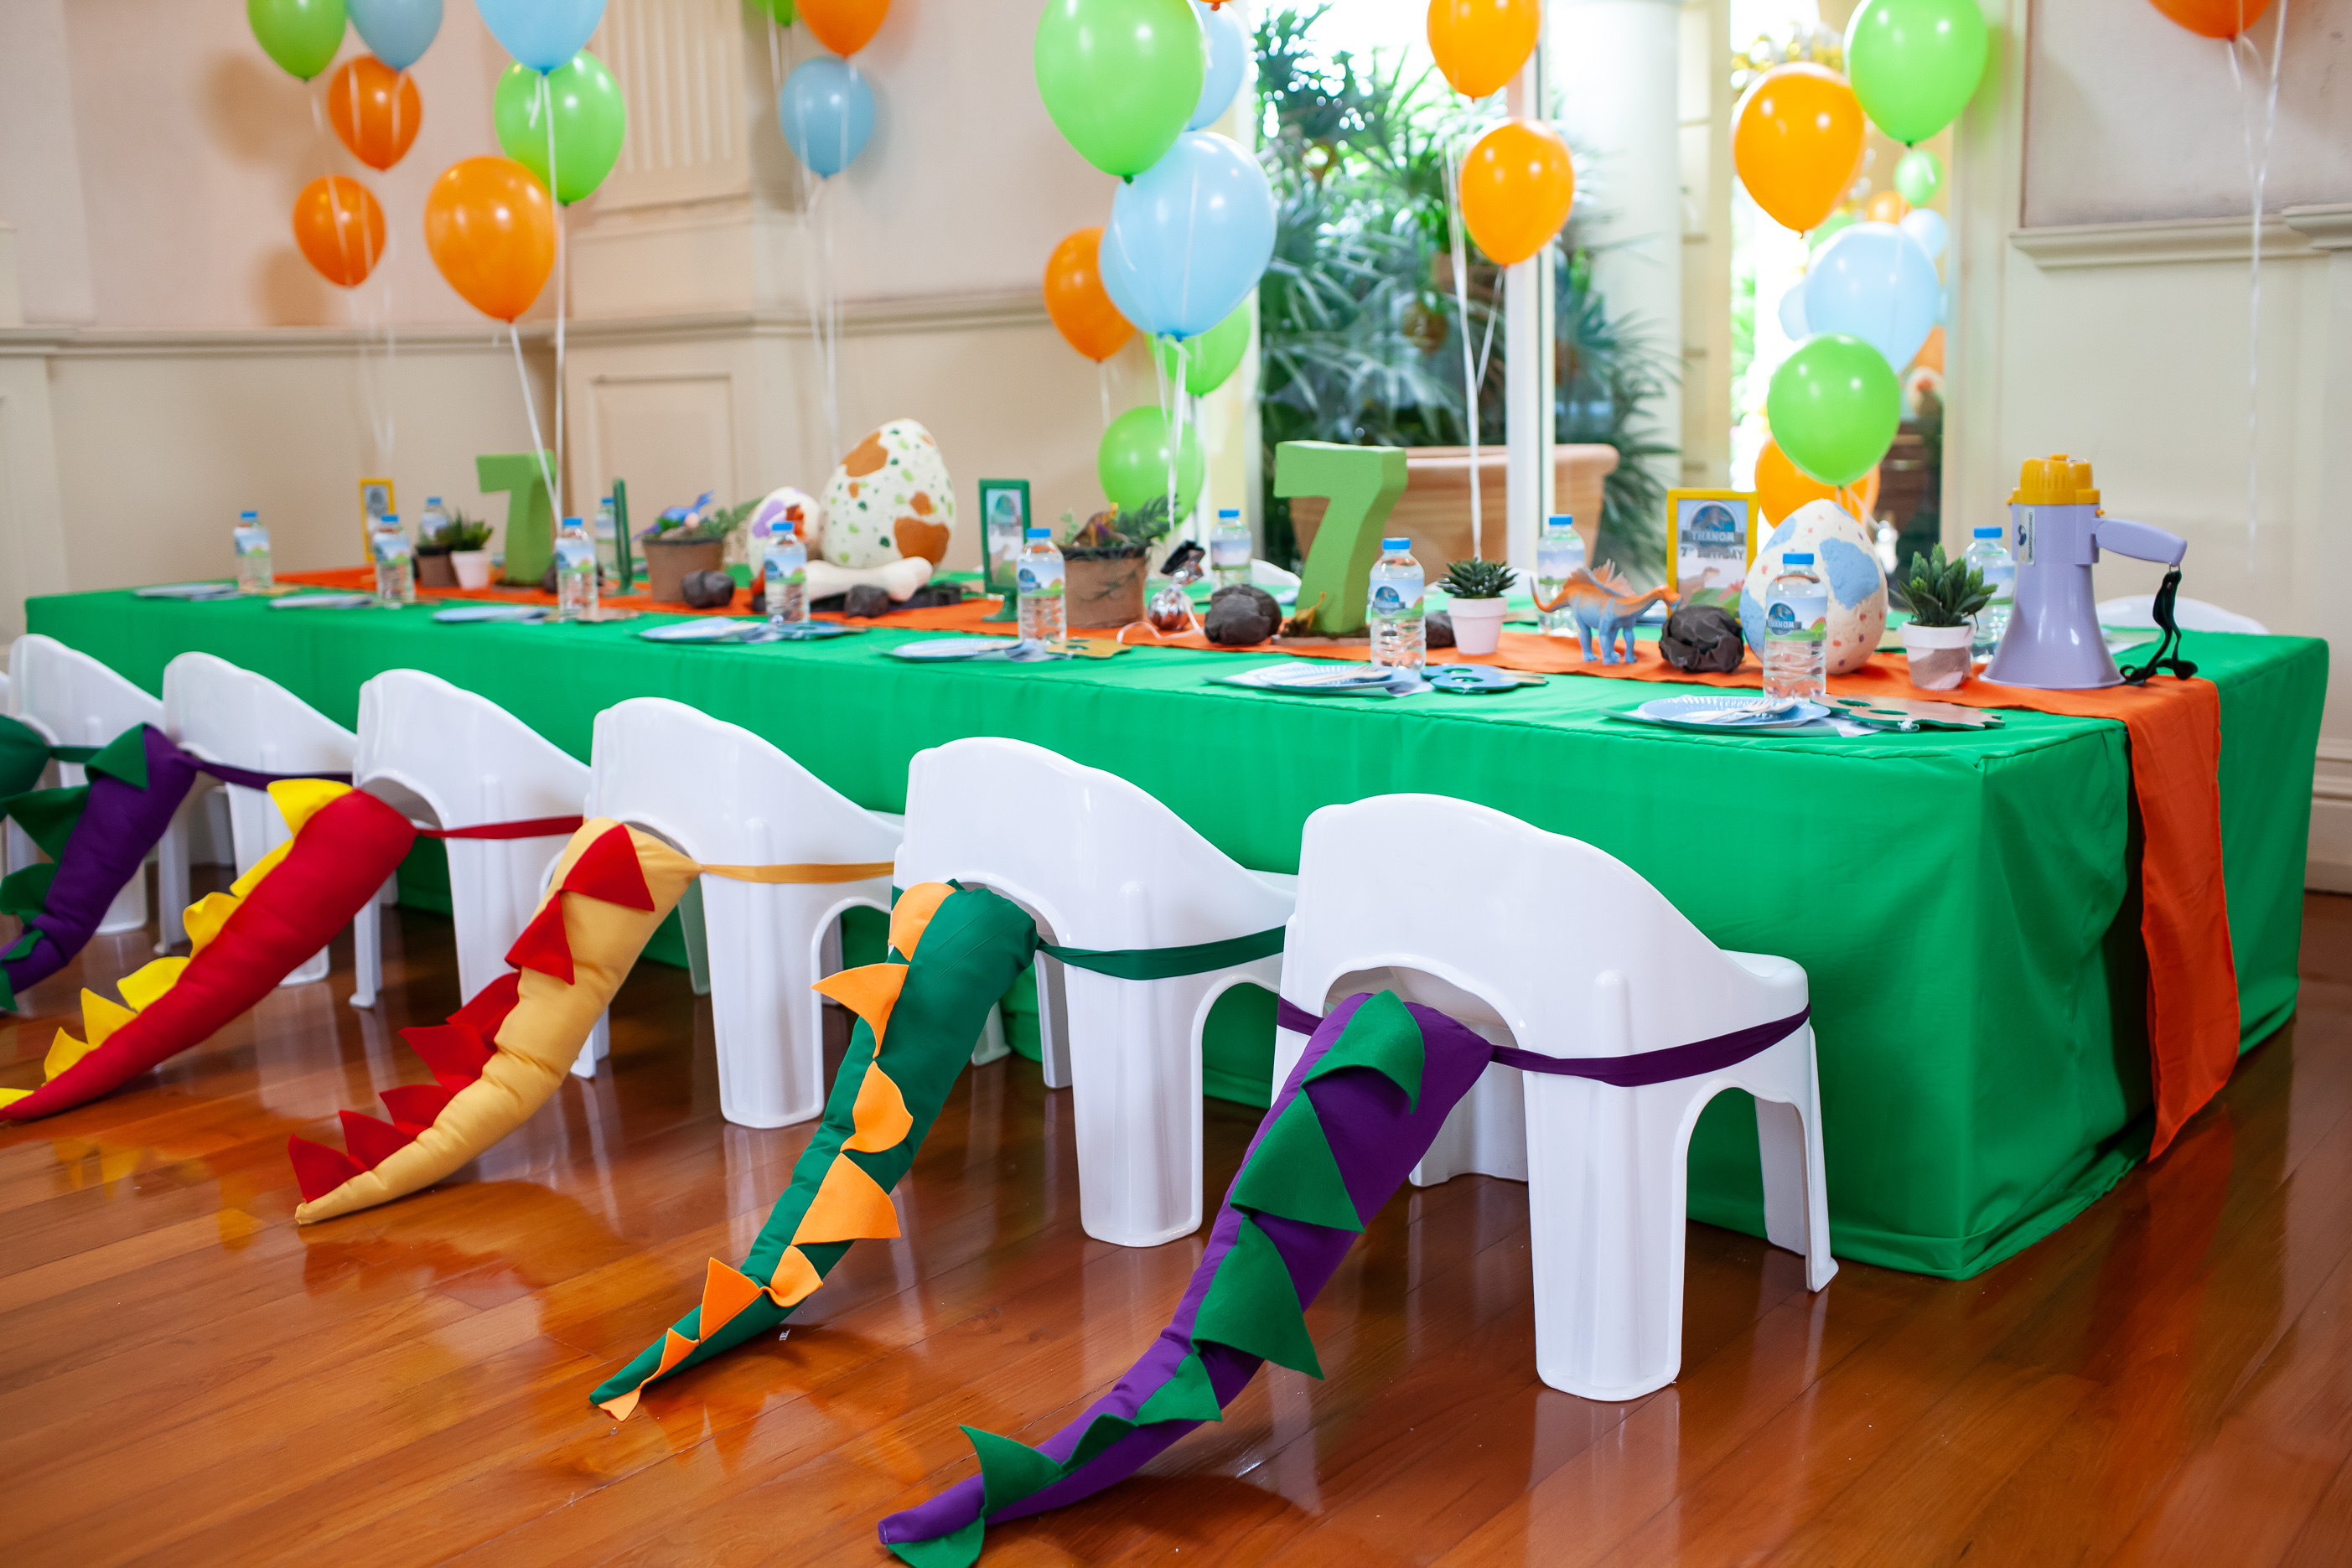 Let's roar and see our Dinosaur themed party ideas for your kids' next birthday including backdrop, balloons, party decoration, mascot and more fun stuffs!